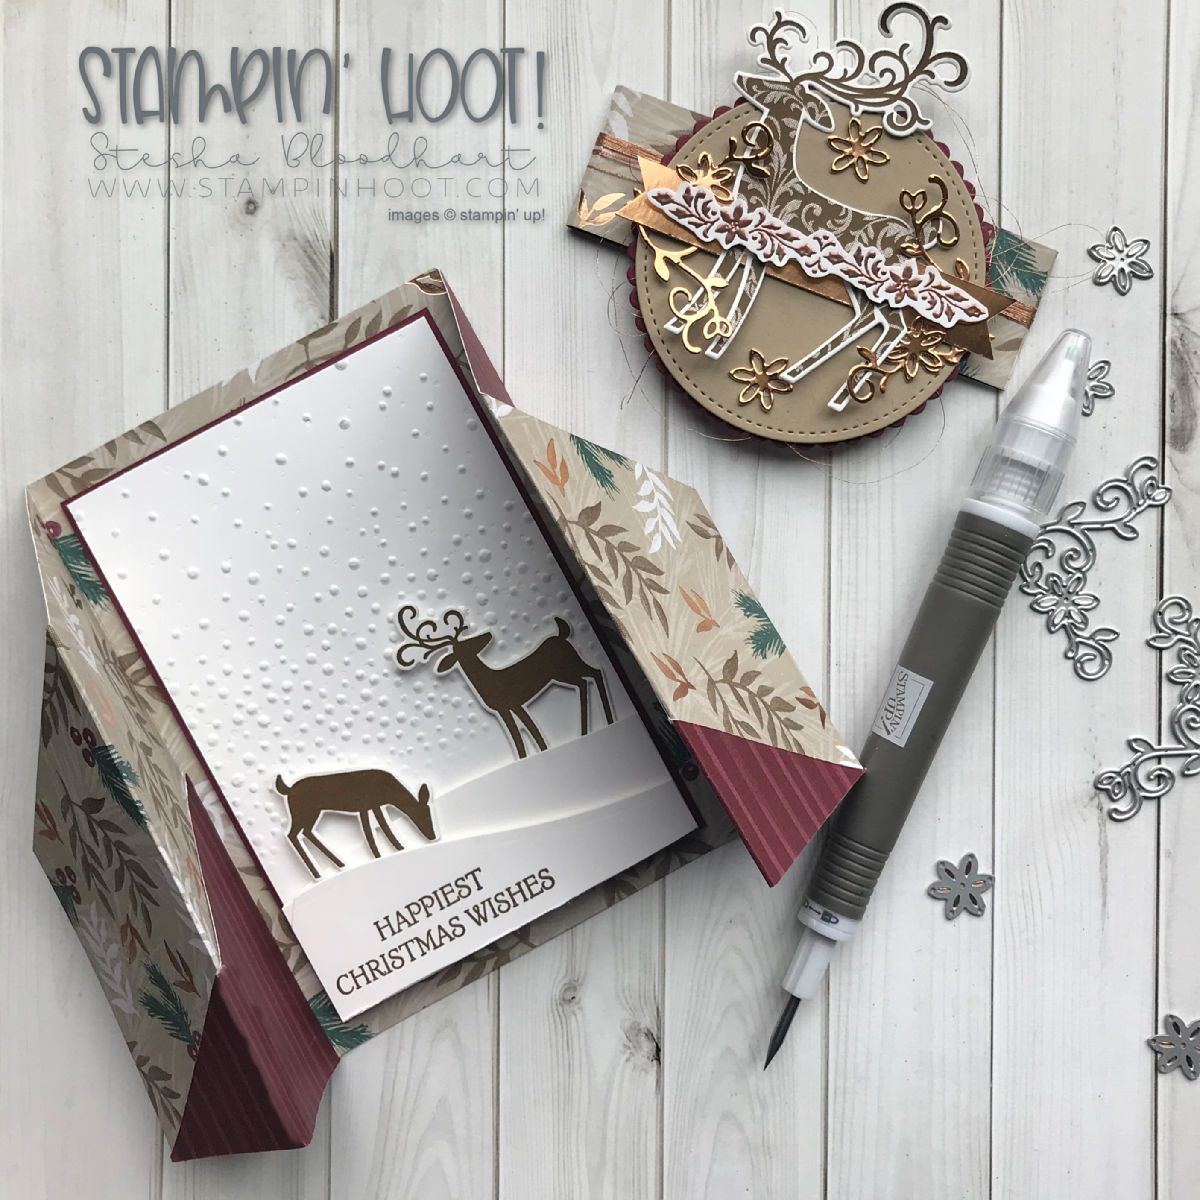 Dashing Deer Bundle by Stampin' Up! Christmas Gatefold Card for the Pals Wicked Folds Blog Hop created by Stampin' Hoot! Stesha Bloodhart #stampinhoot #steshabloodhart